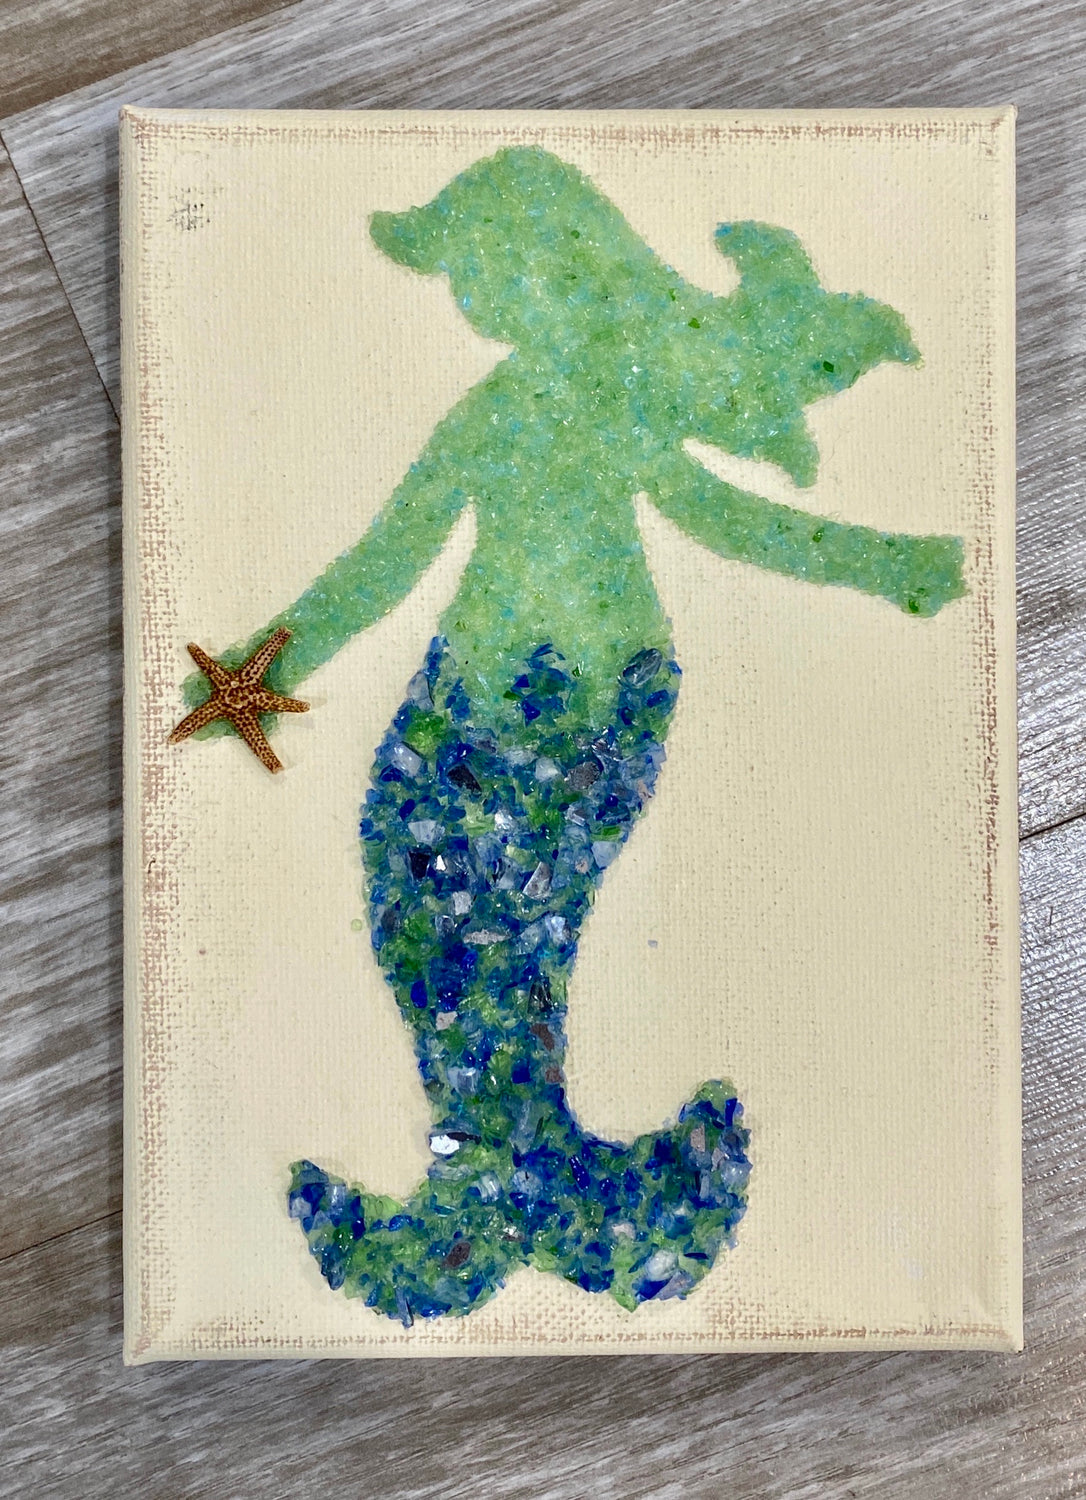 5x7 Mermaid- side view blue/green